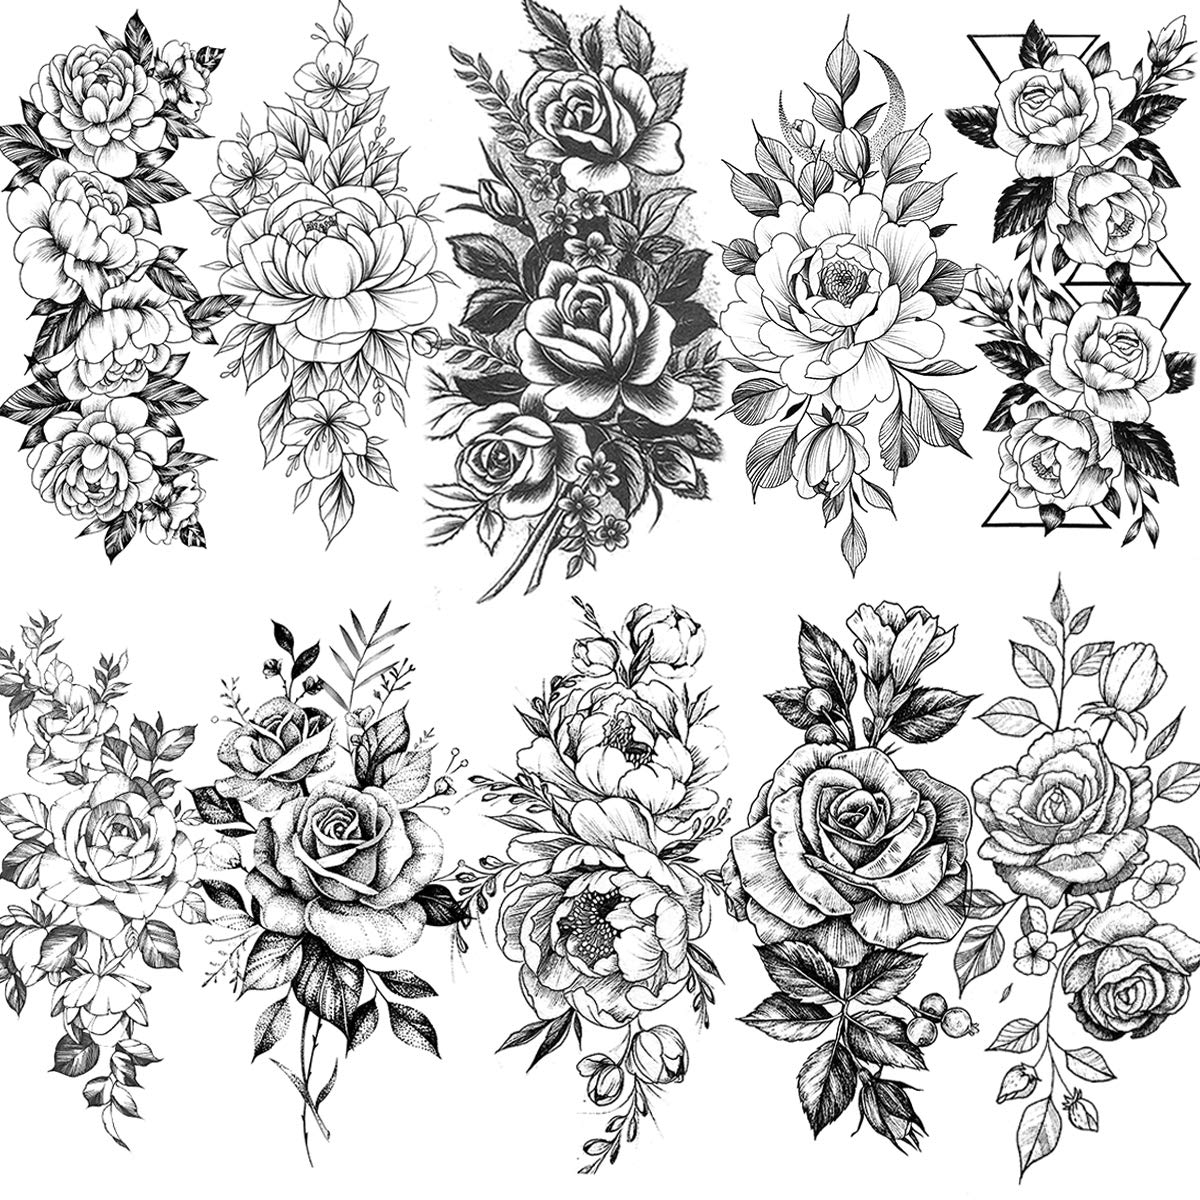 Amazon Com Vantaty 10 Sheets 3d Big Rose Peony Flower Girls Temporary Tattoos For Women Waterproof Black Tattoo Stickers 3d Blossom Lady Shoulder Tatoos Leaf Diy Costom Sexy Arm Chains Pattern Beauty Flower tattoos are very popular in different kinds, sizes and colours. vantaty 10 sheets 3d big rose peony flower girls temporary tattoos for women waterproof black tattoo stickers 3d blossom lady shoulder tatoos leaf diy